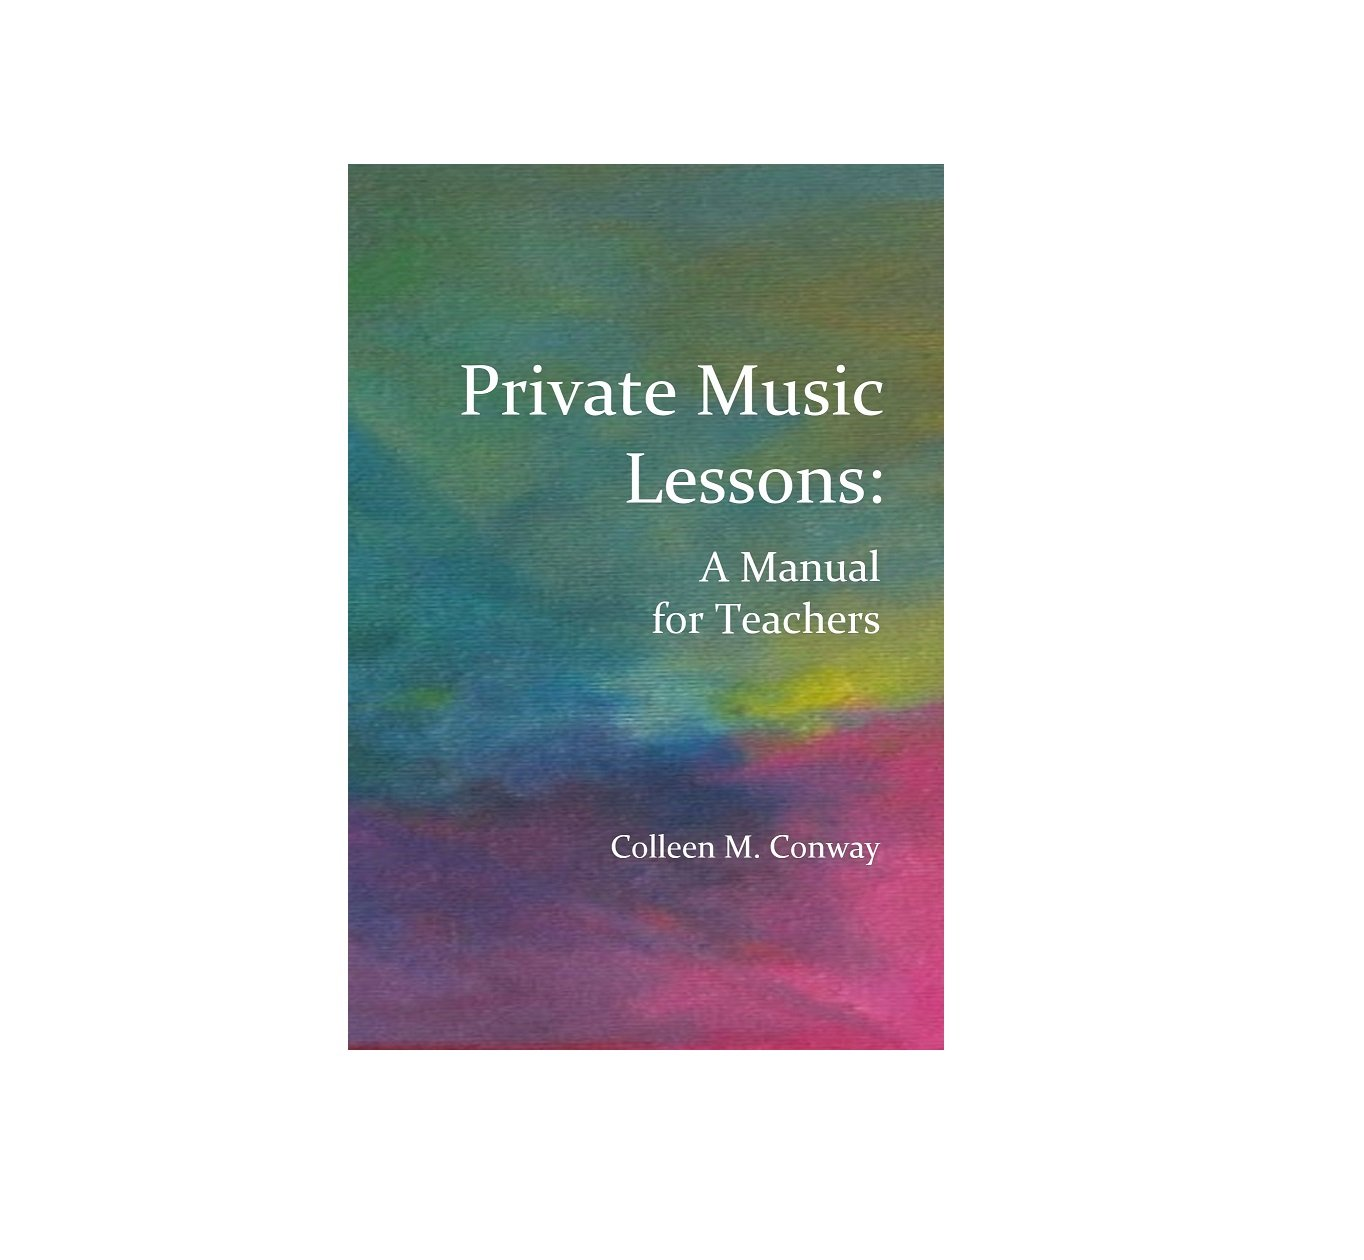 Private Music Lessons: A Manual for Teachers by Colleen M. Conway